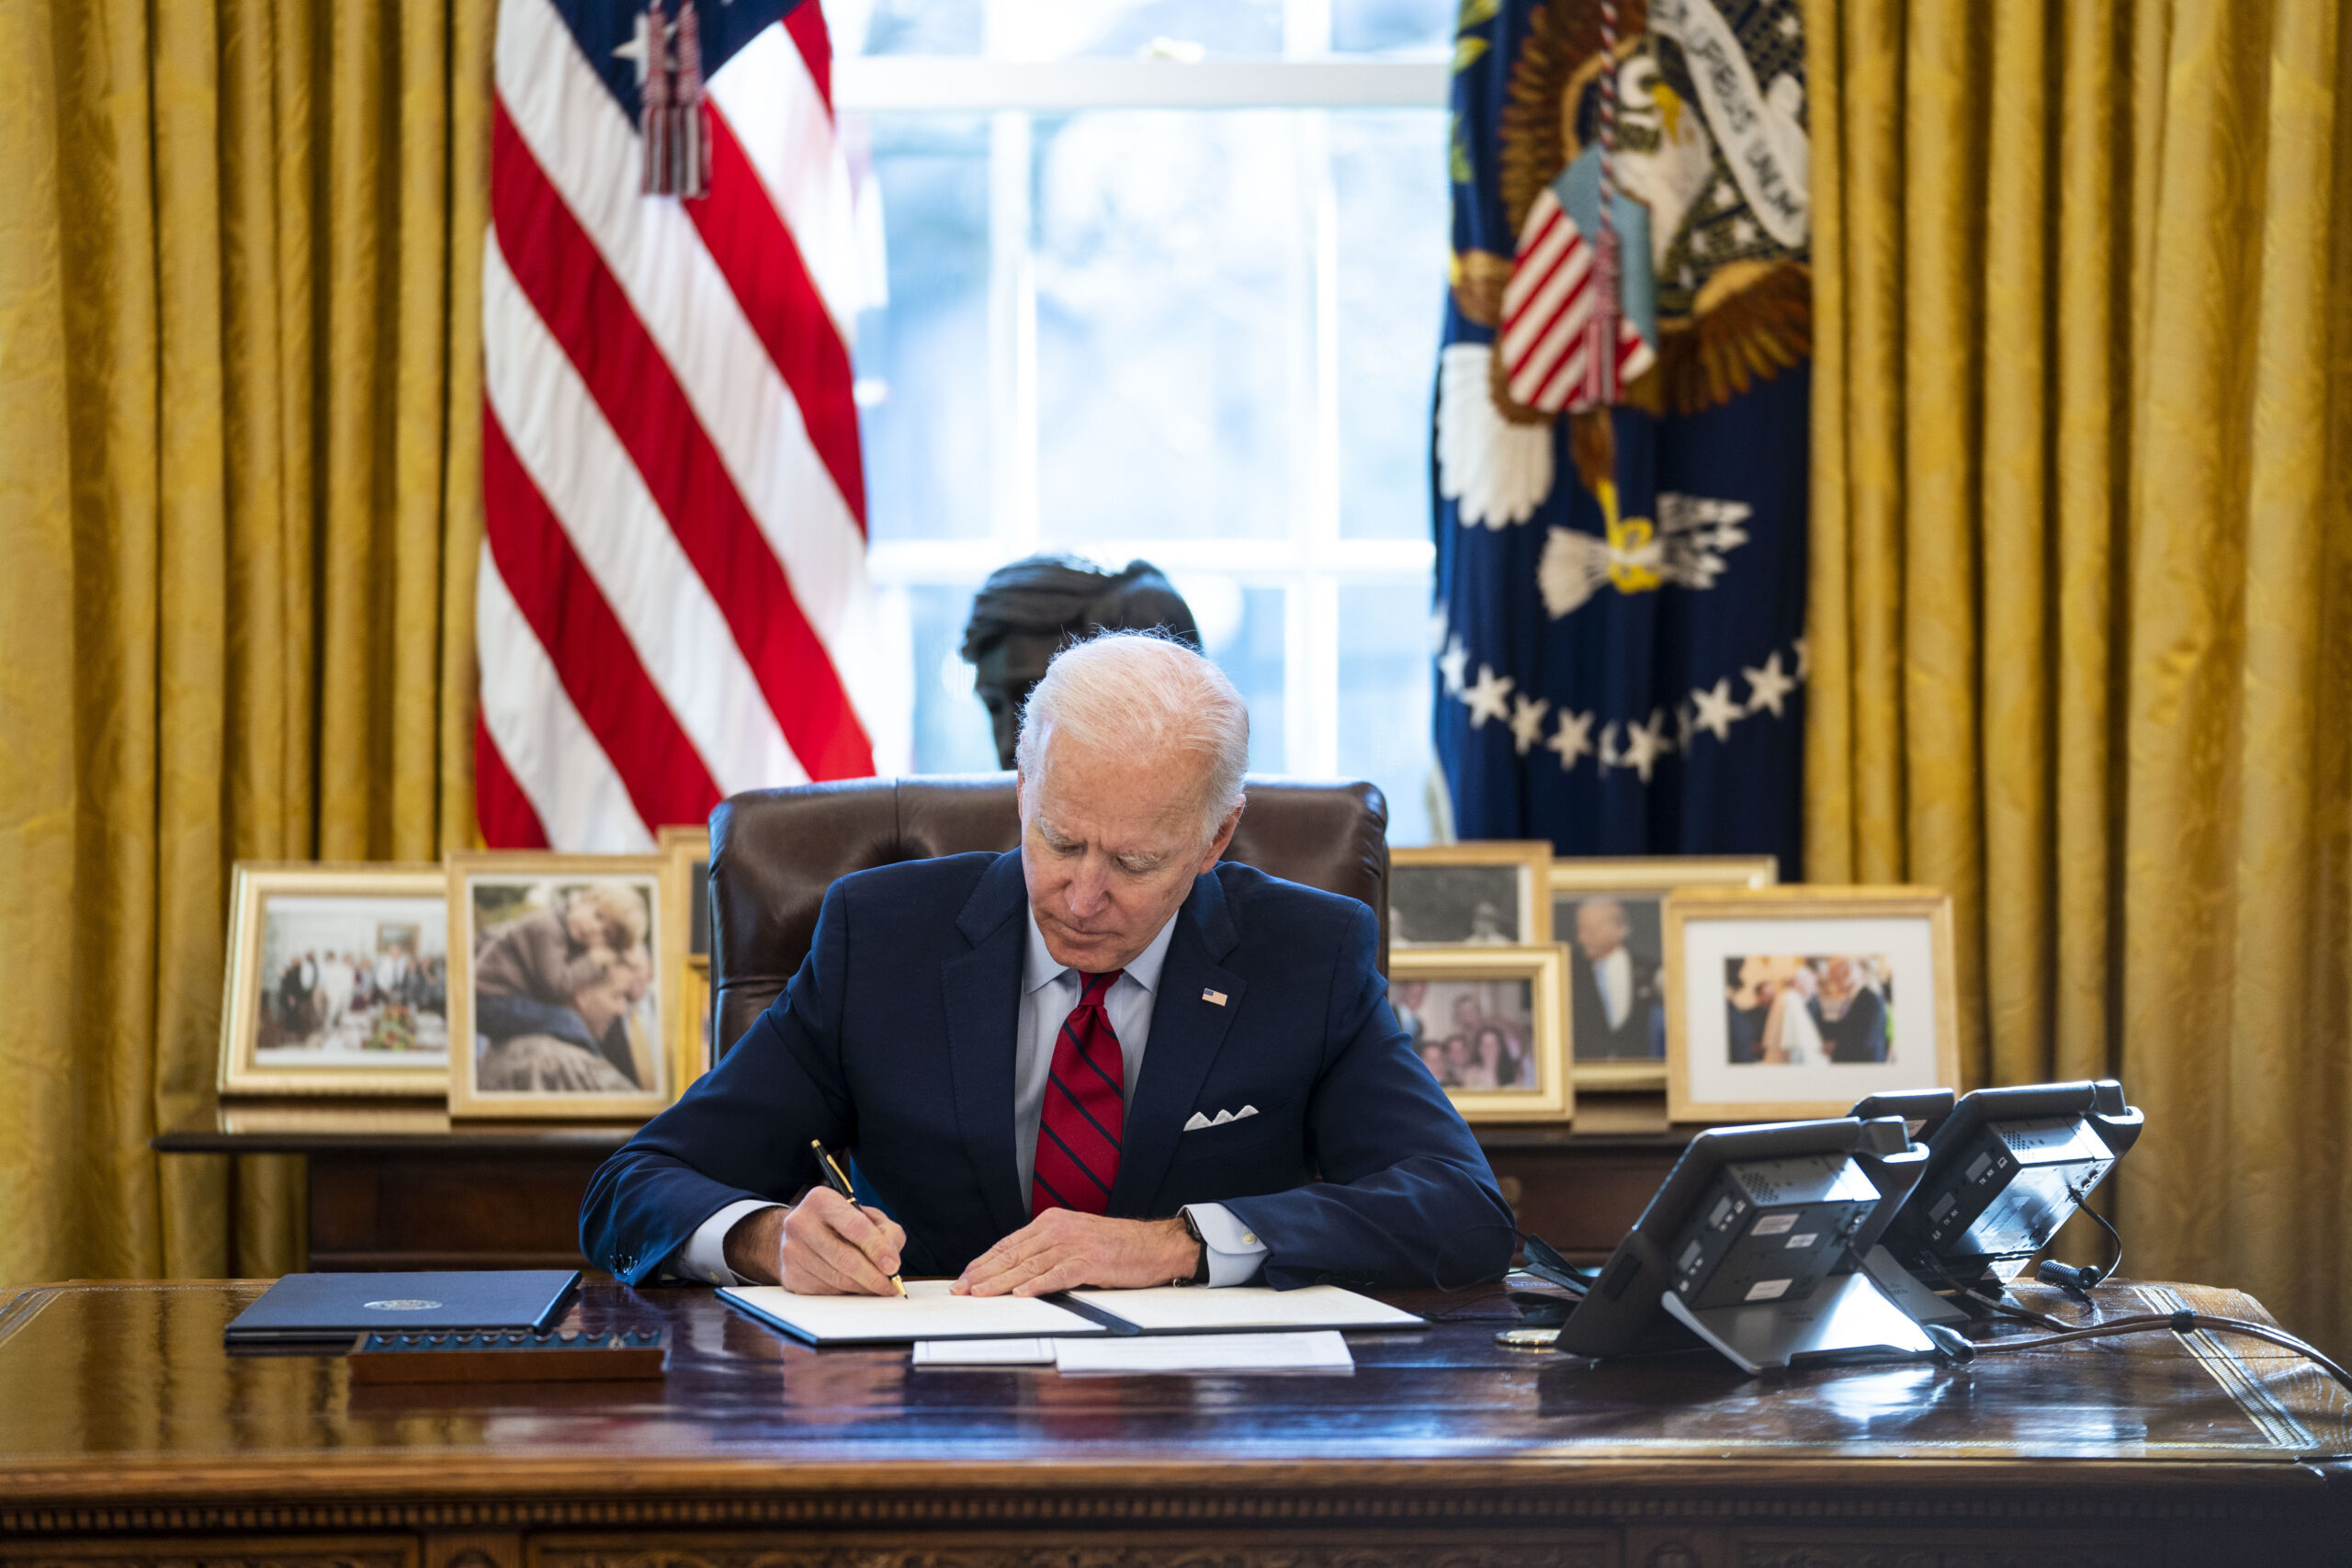 Biden faces down GOP governors on mask mandates at school